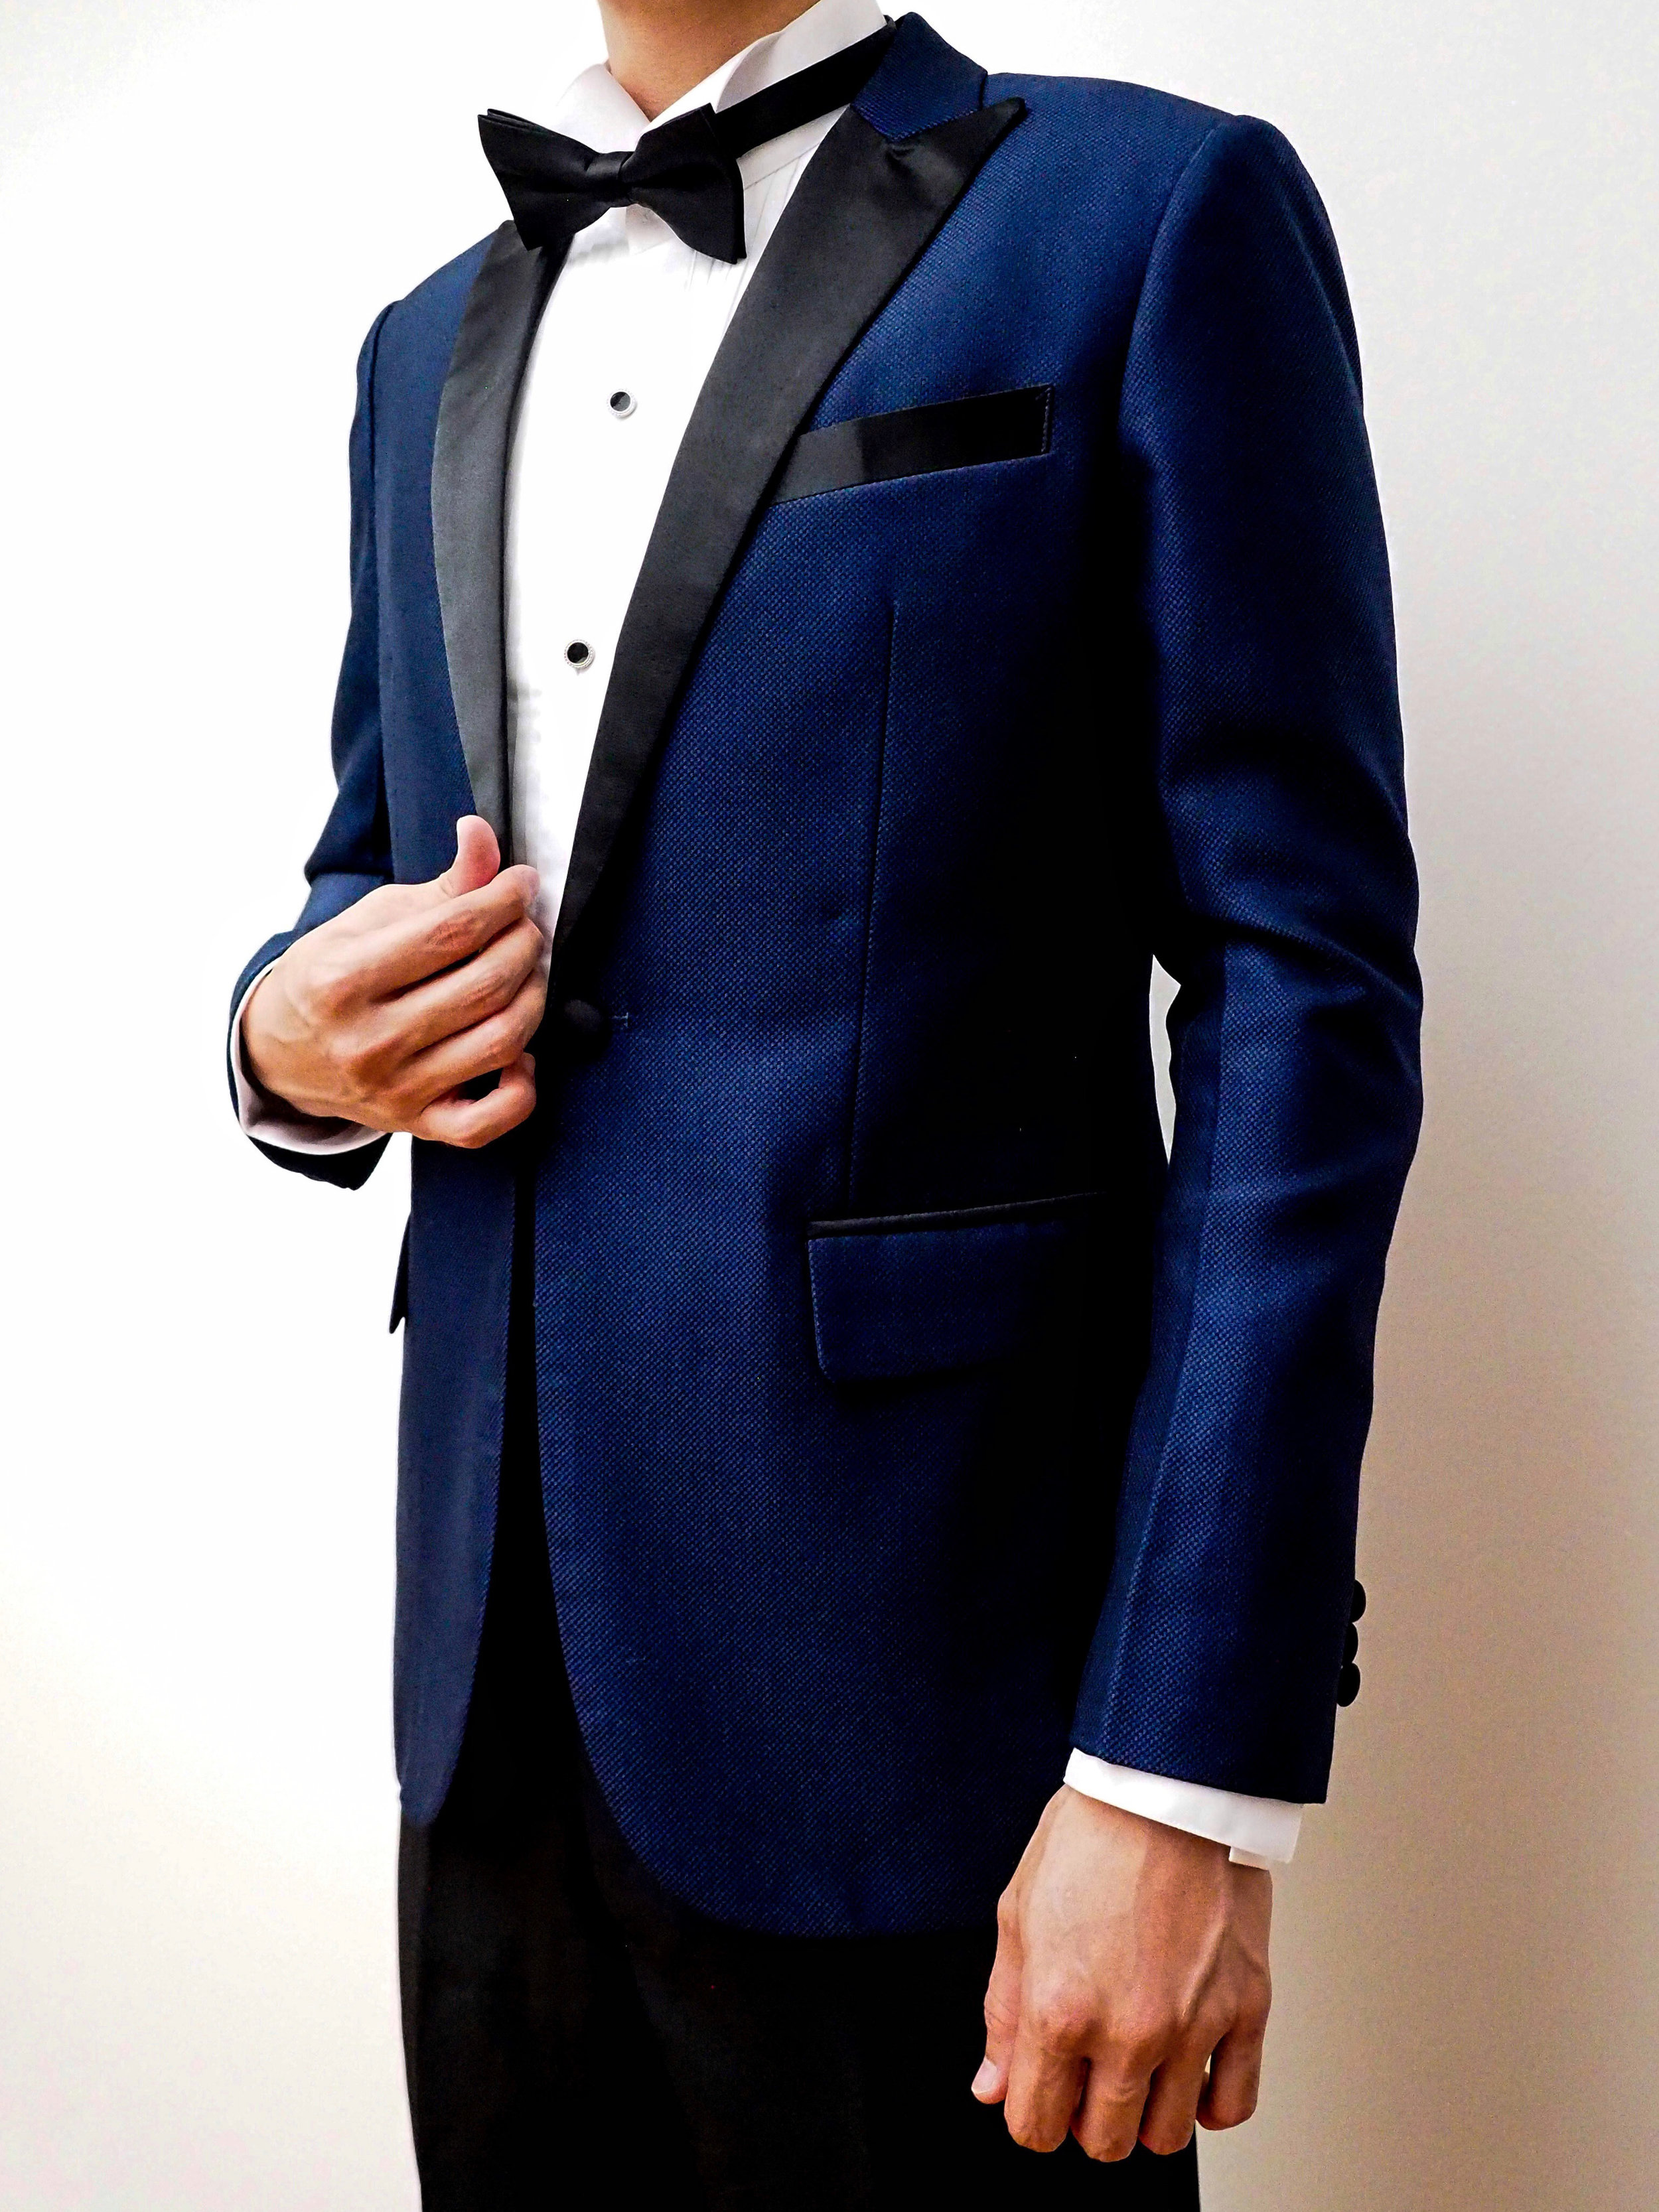 Blue woven suit by CCM Wedding